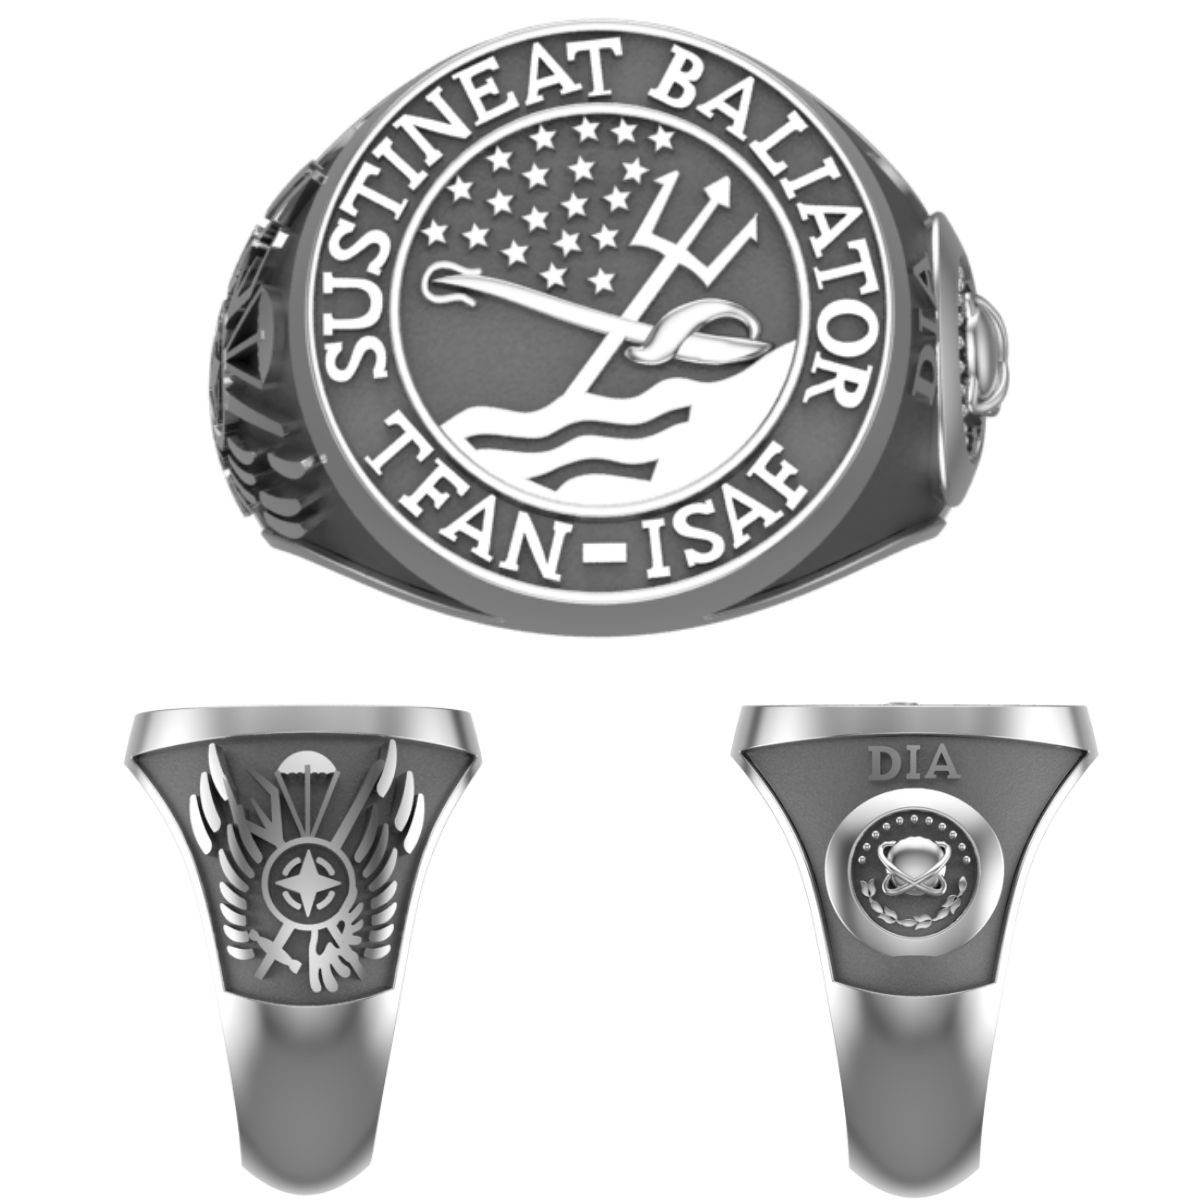 Design Your Own Ring: Design Your Own Military Signet